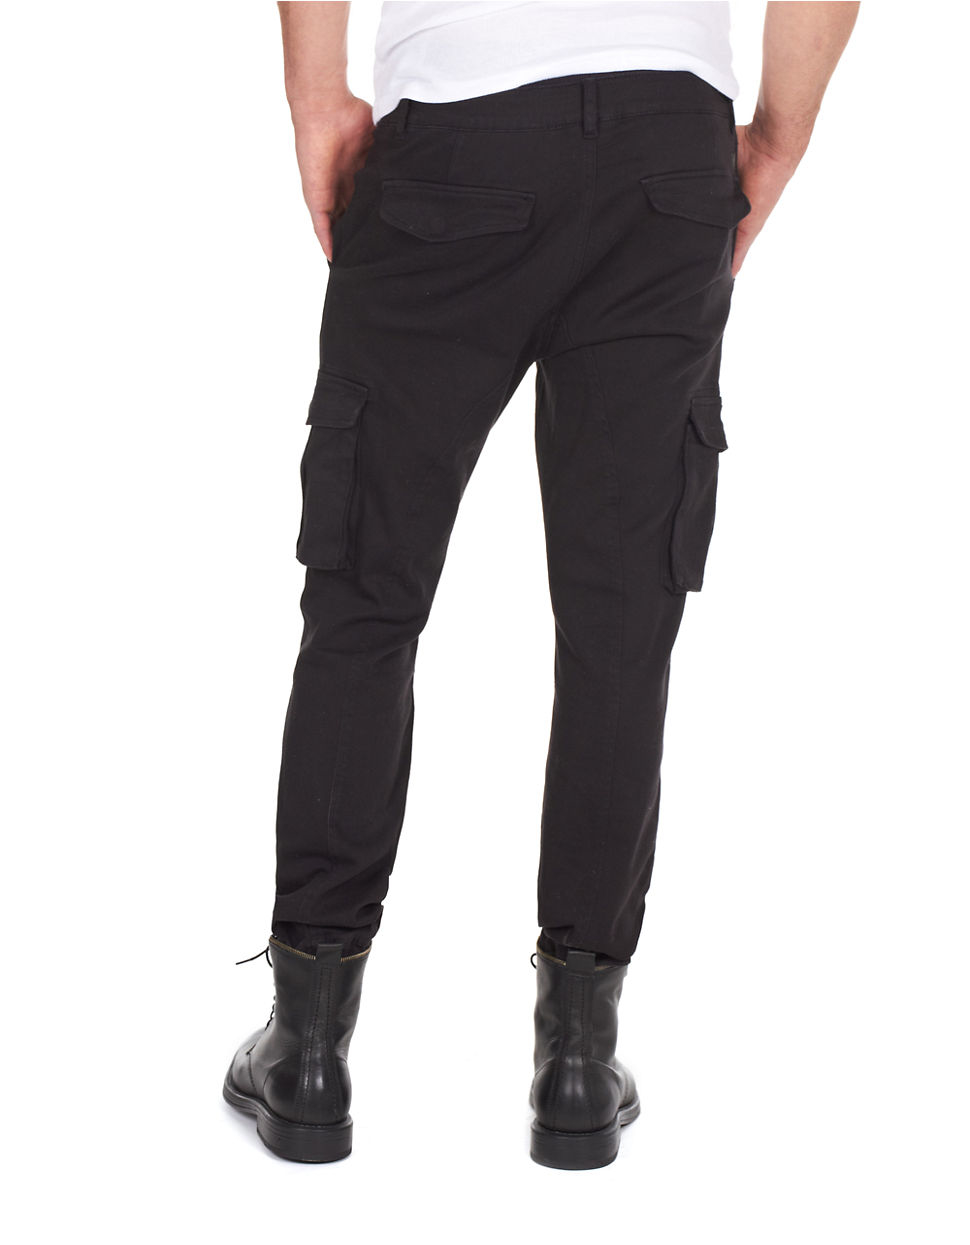 TROUSERS - Casual trousers William Rast Cheap Factory Outlet 1p3orIB